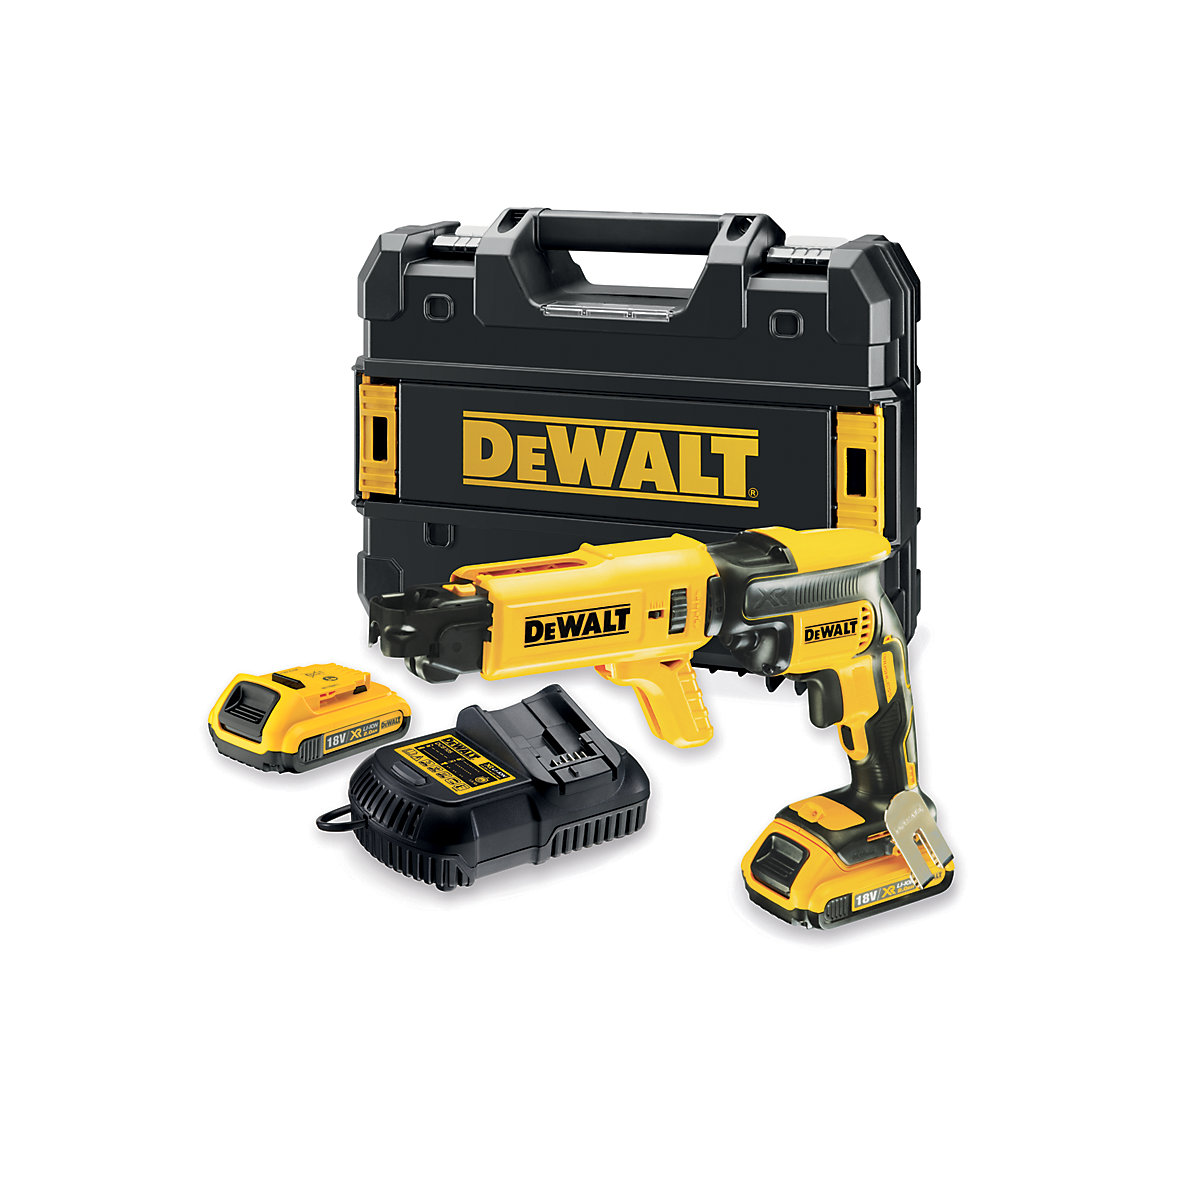 DeWalt 18V XR Li-Ion Brushless Cordless Collated Drywall Screwdriver Gun -  Includes 2 x 2 0AH Batteries DCF620D2K